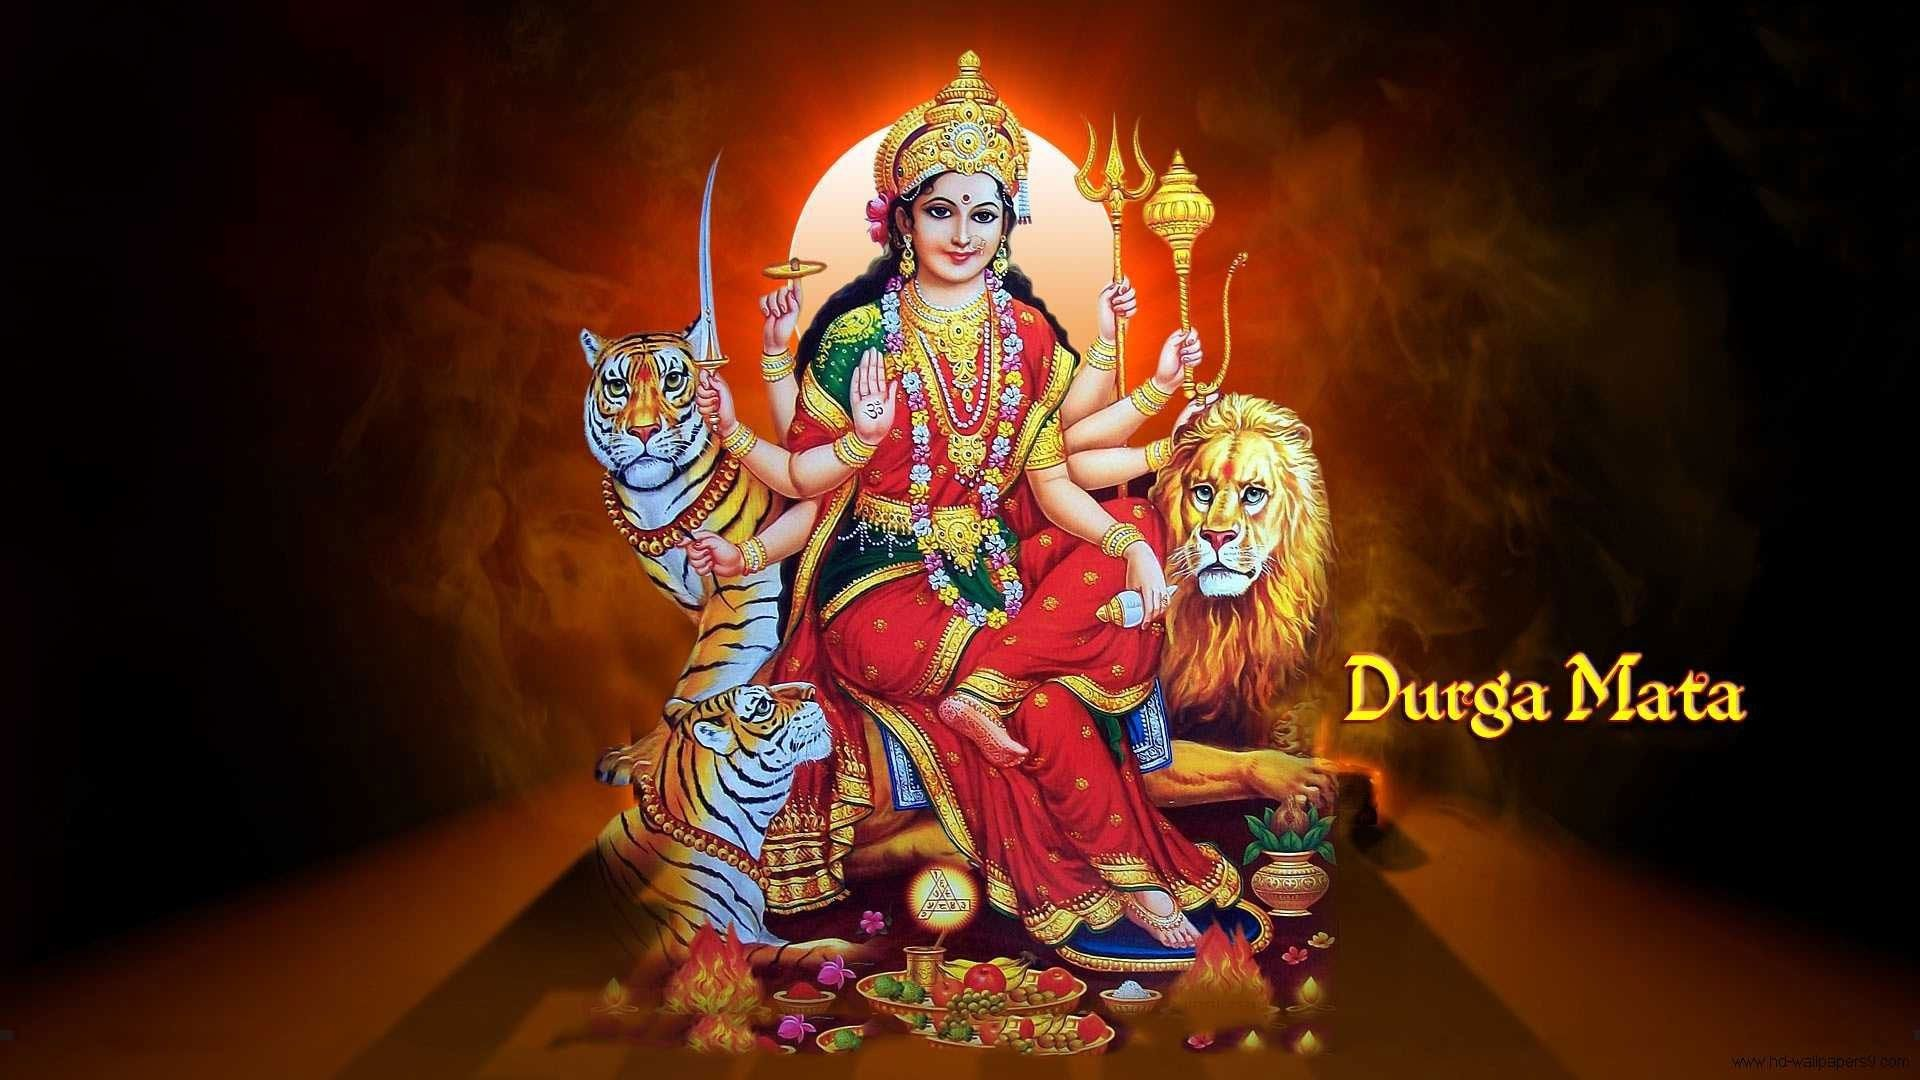 Awesome High Resolution Desktop Wallpaper Hd 3d Full Screen God Lord Murugan Pictures In 2020 Maa Durga Hd Wallpaper Maa Durga Hd Durga